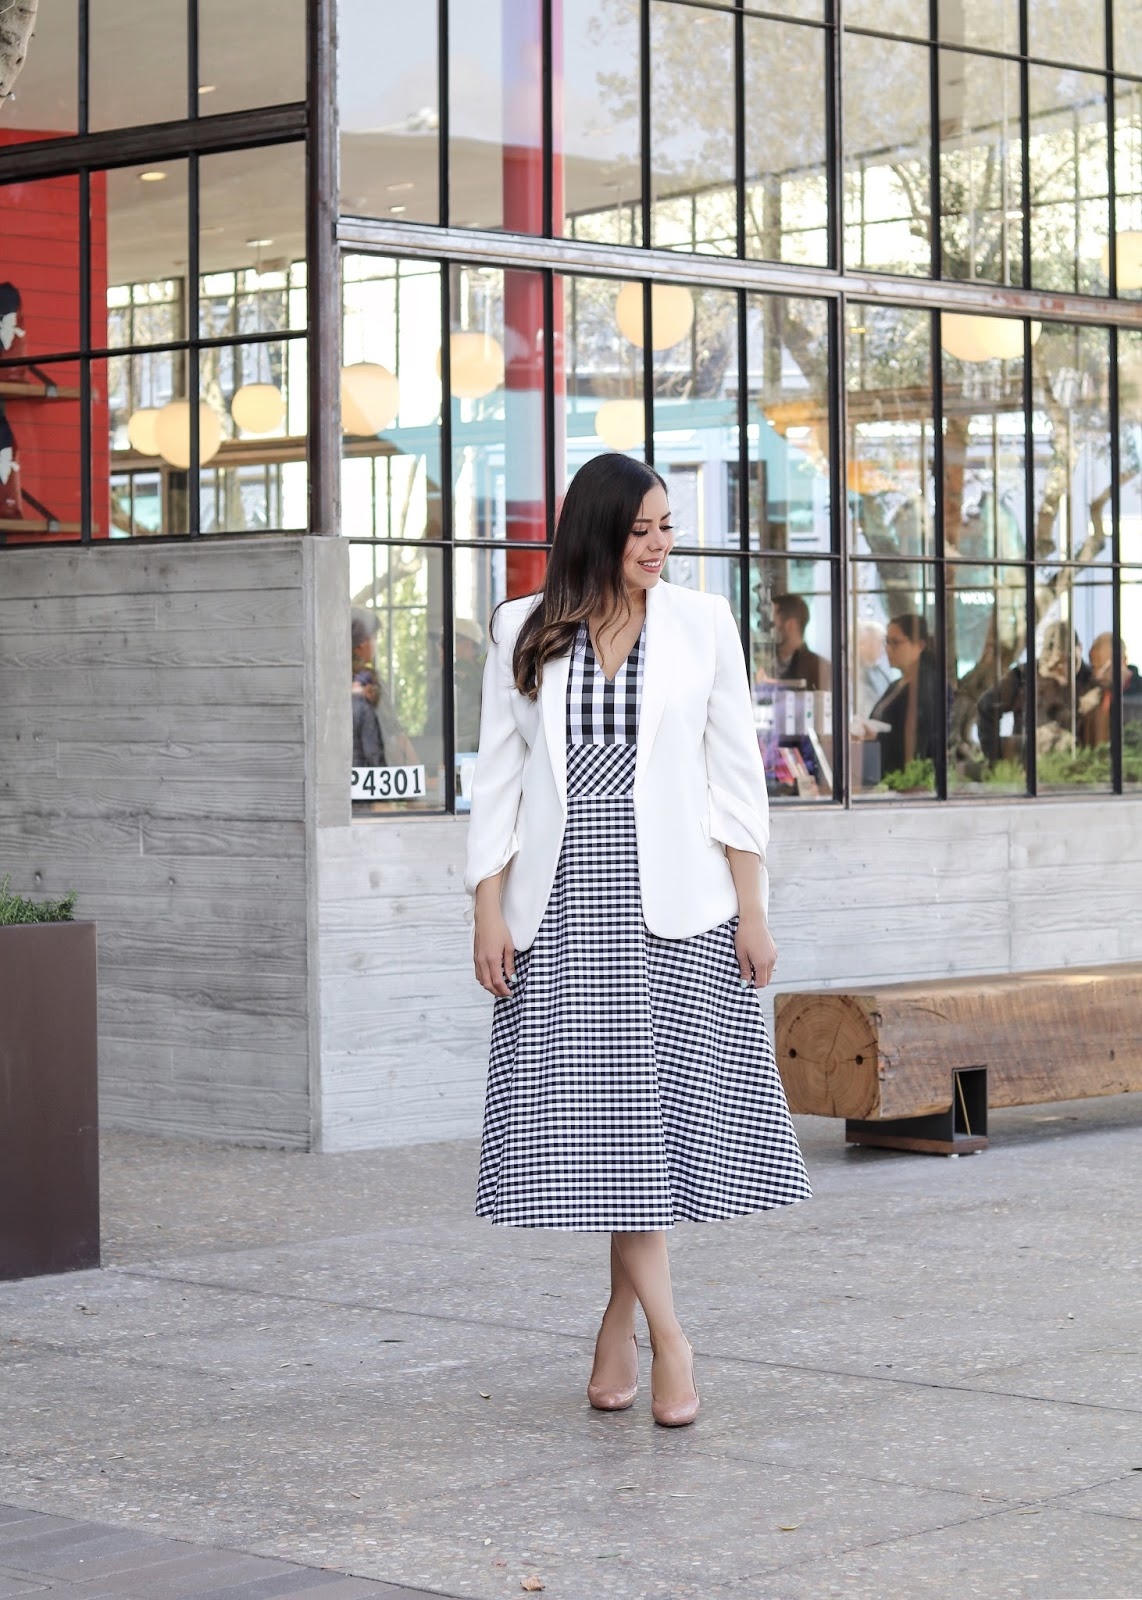 Elegant way to wear gingham, elegant youthful outfit, gingham for spring 2018